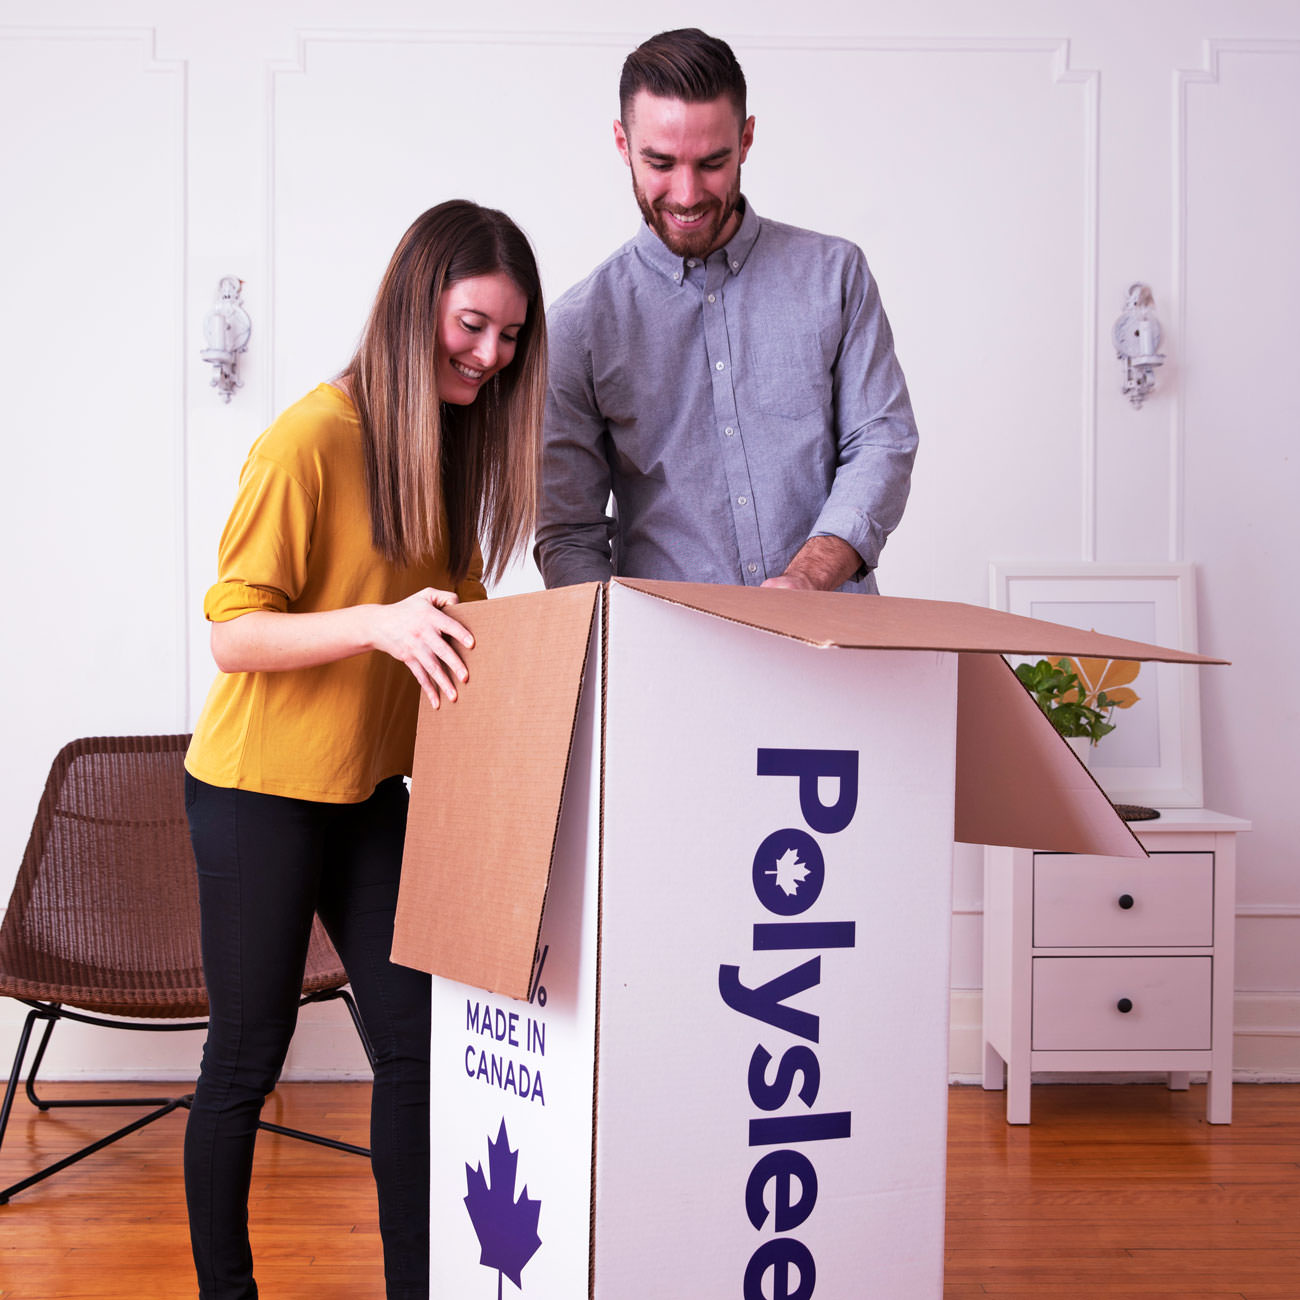 A couple opening their Polysleep mattress box